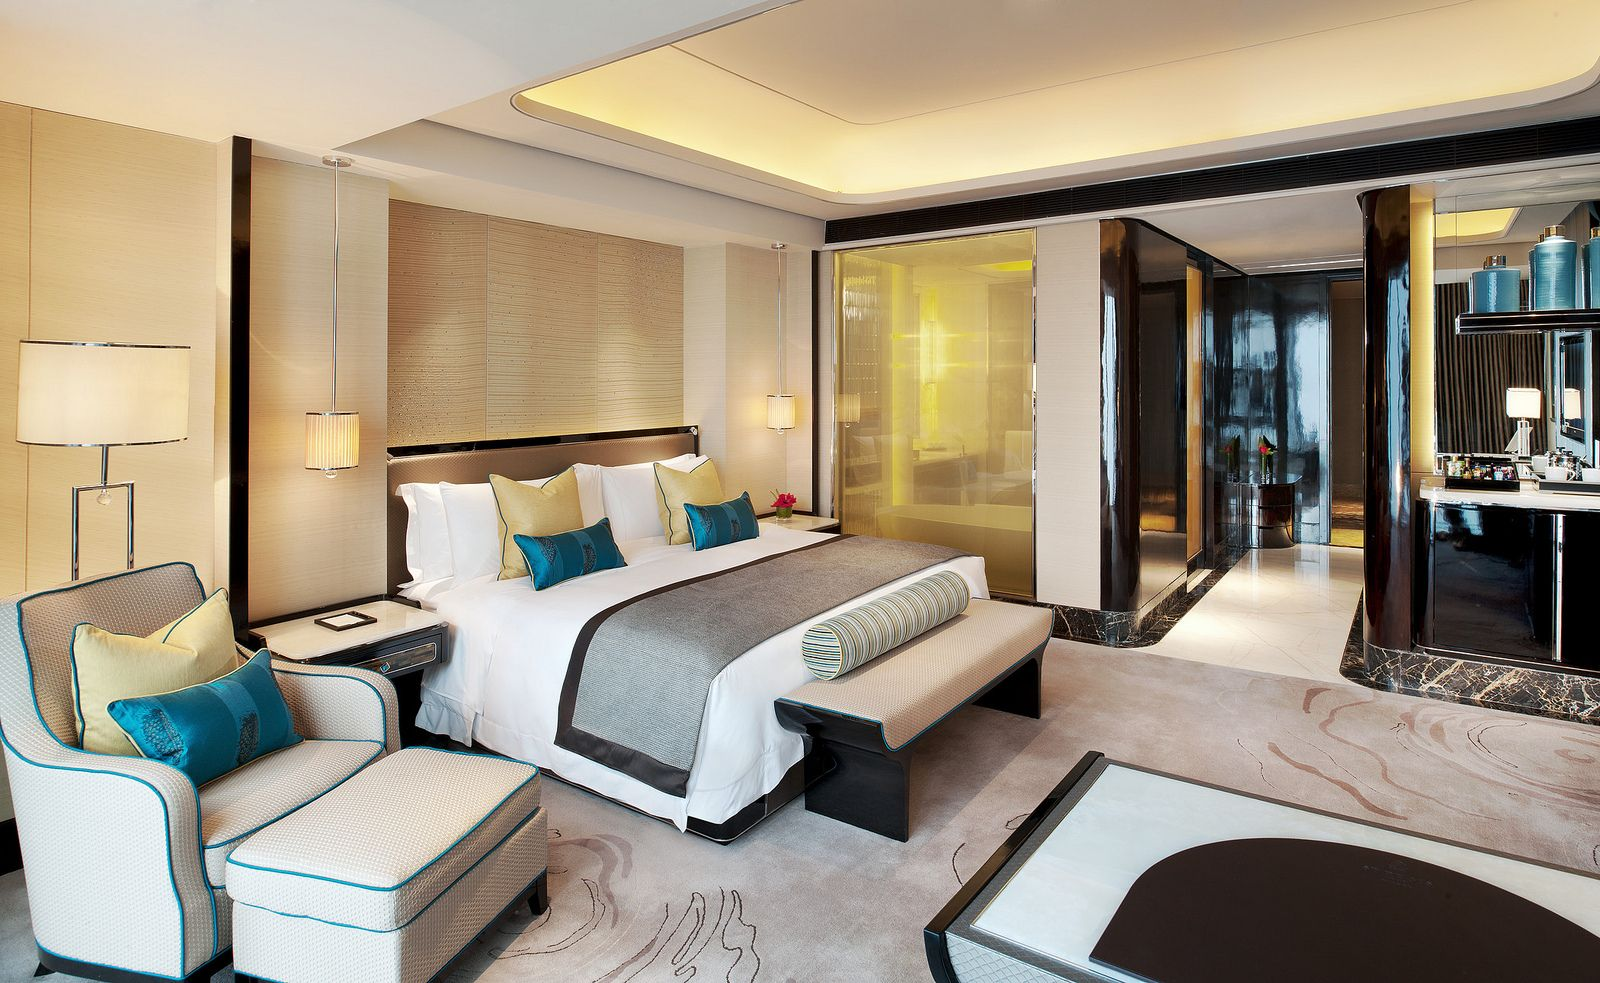 The St Regis Shenzhen Deluxe City View Room Luxury Hotel Room Hotel Room Interior Hotel Room Design Luxury hotel room design